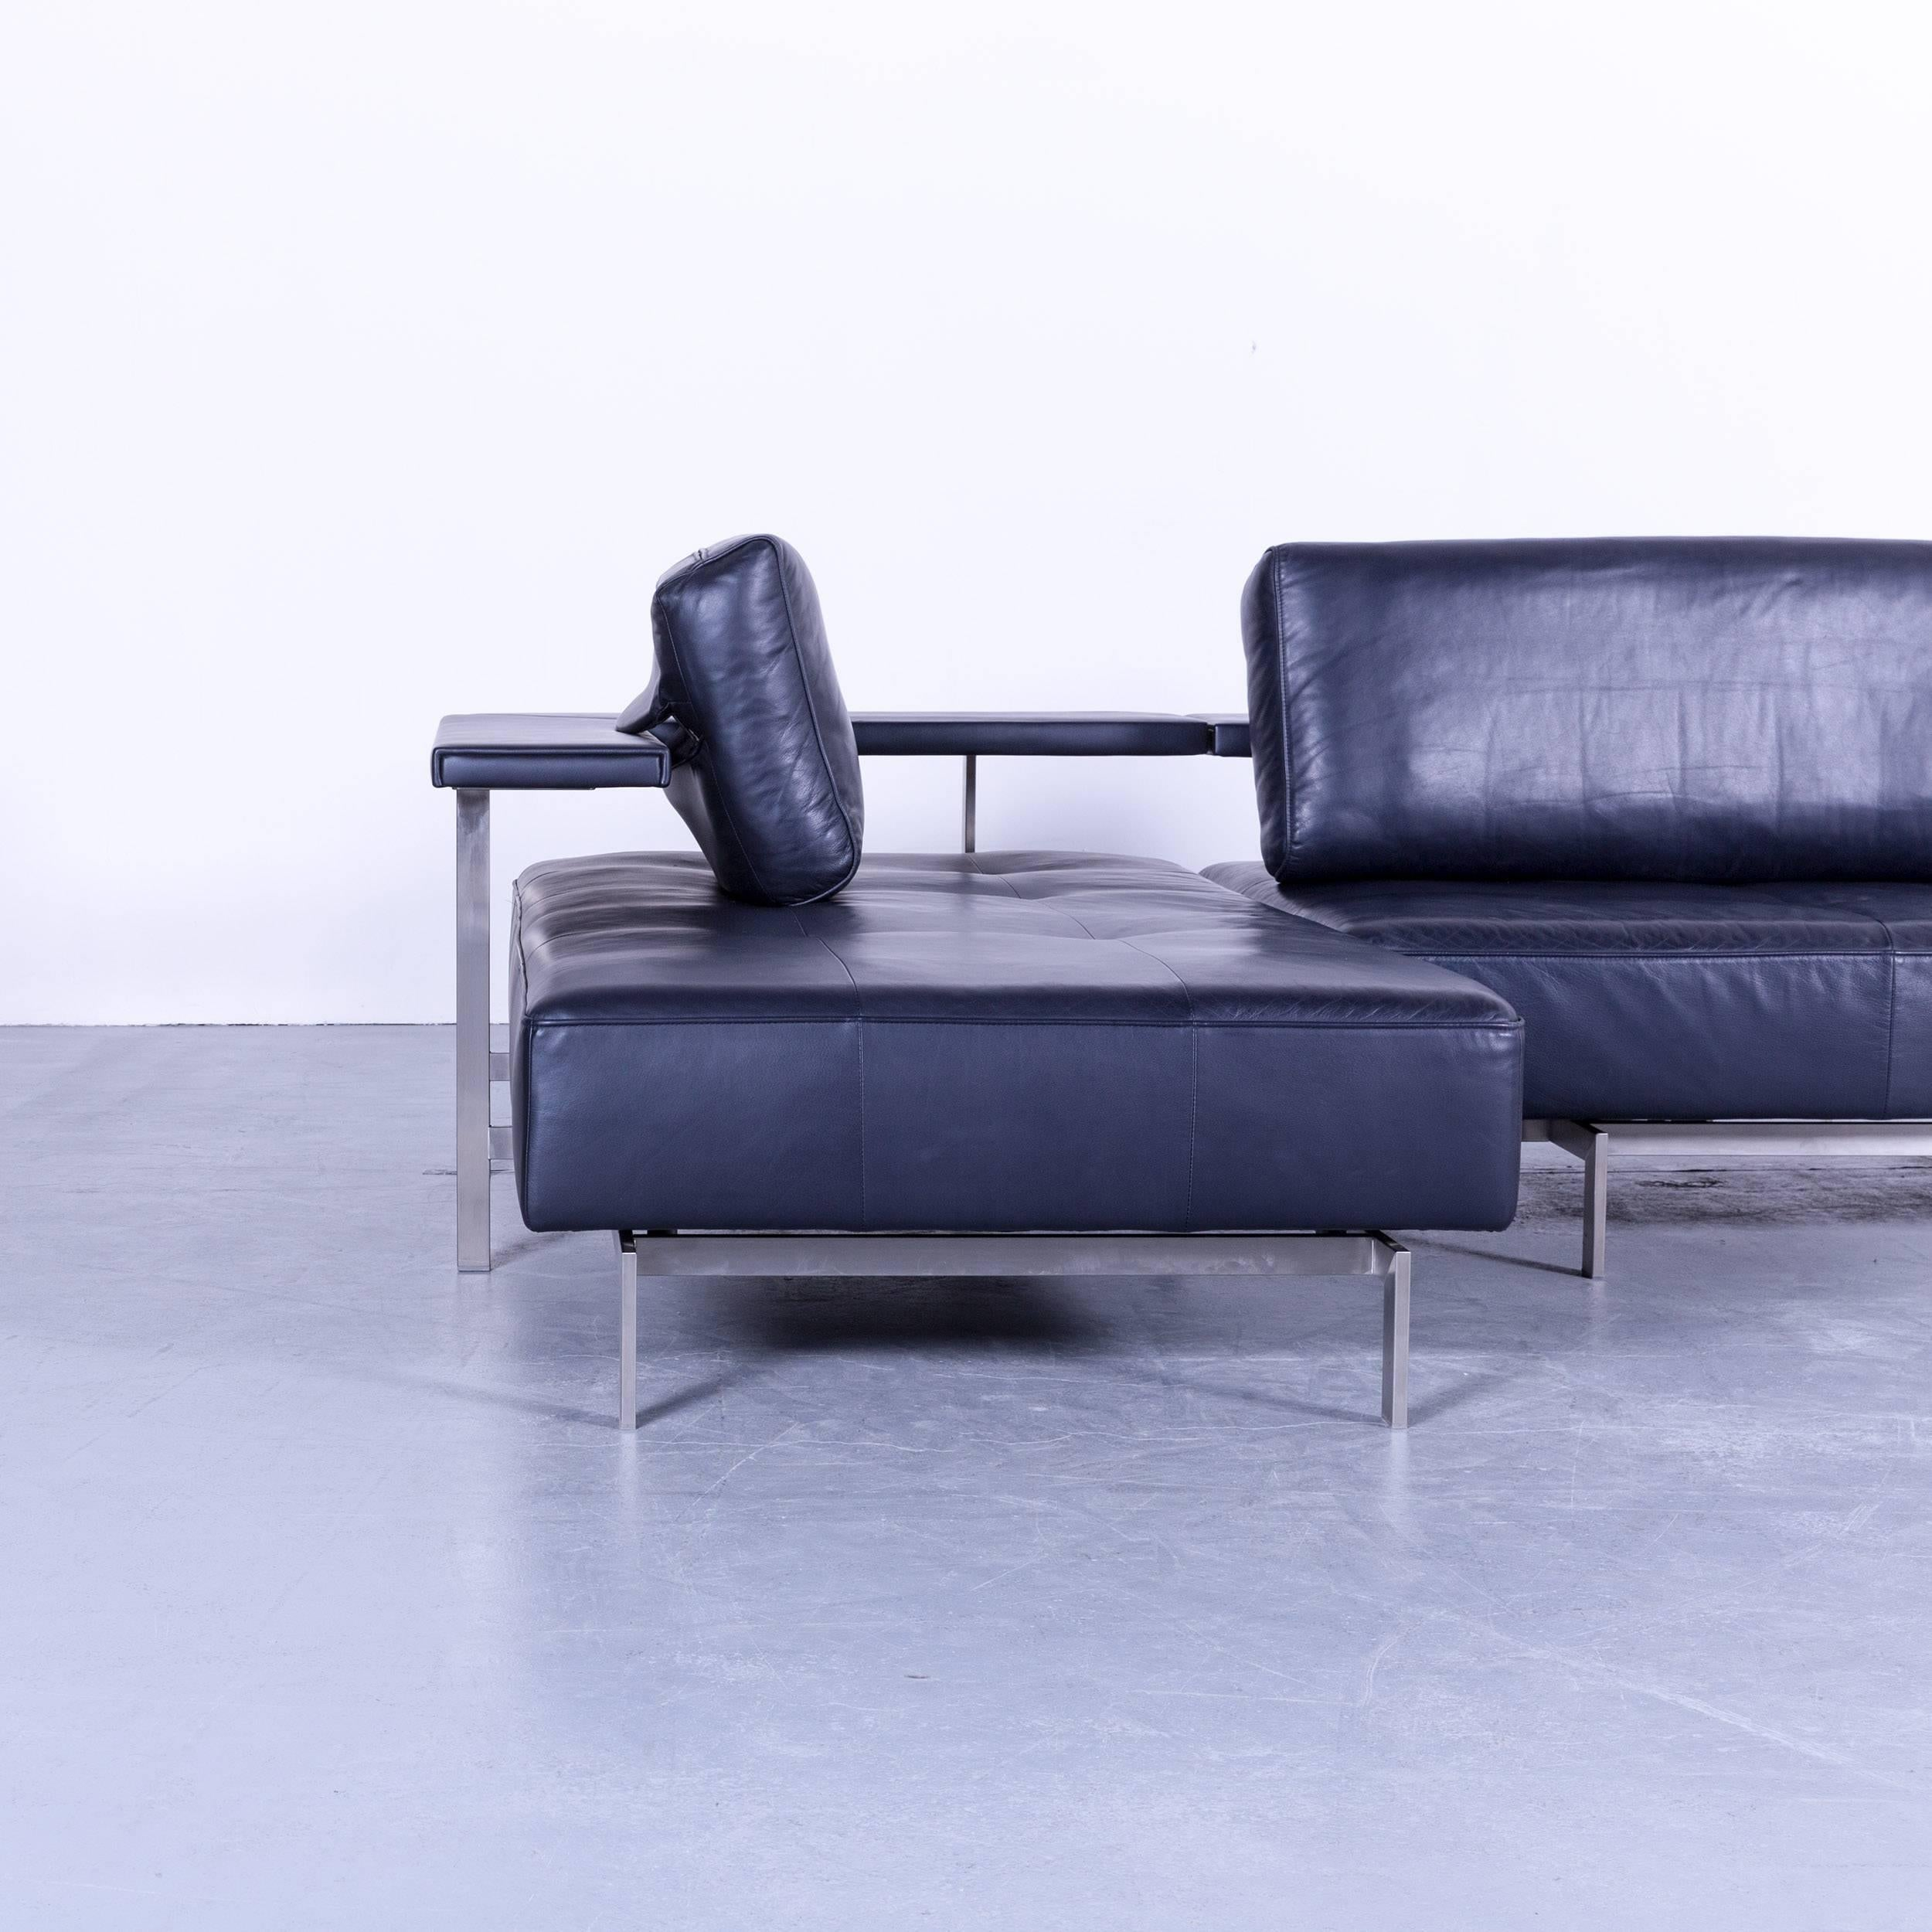 Blickfang Benz Couch Beste Wahl Dono